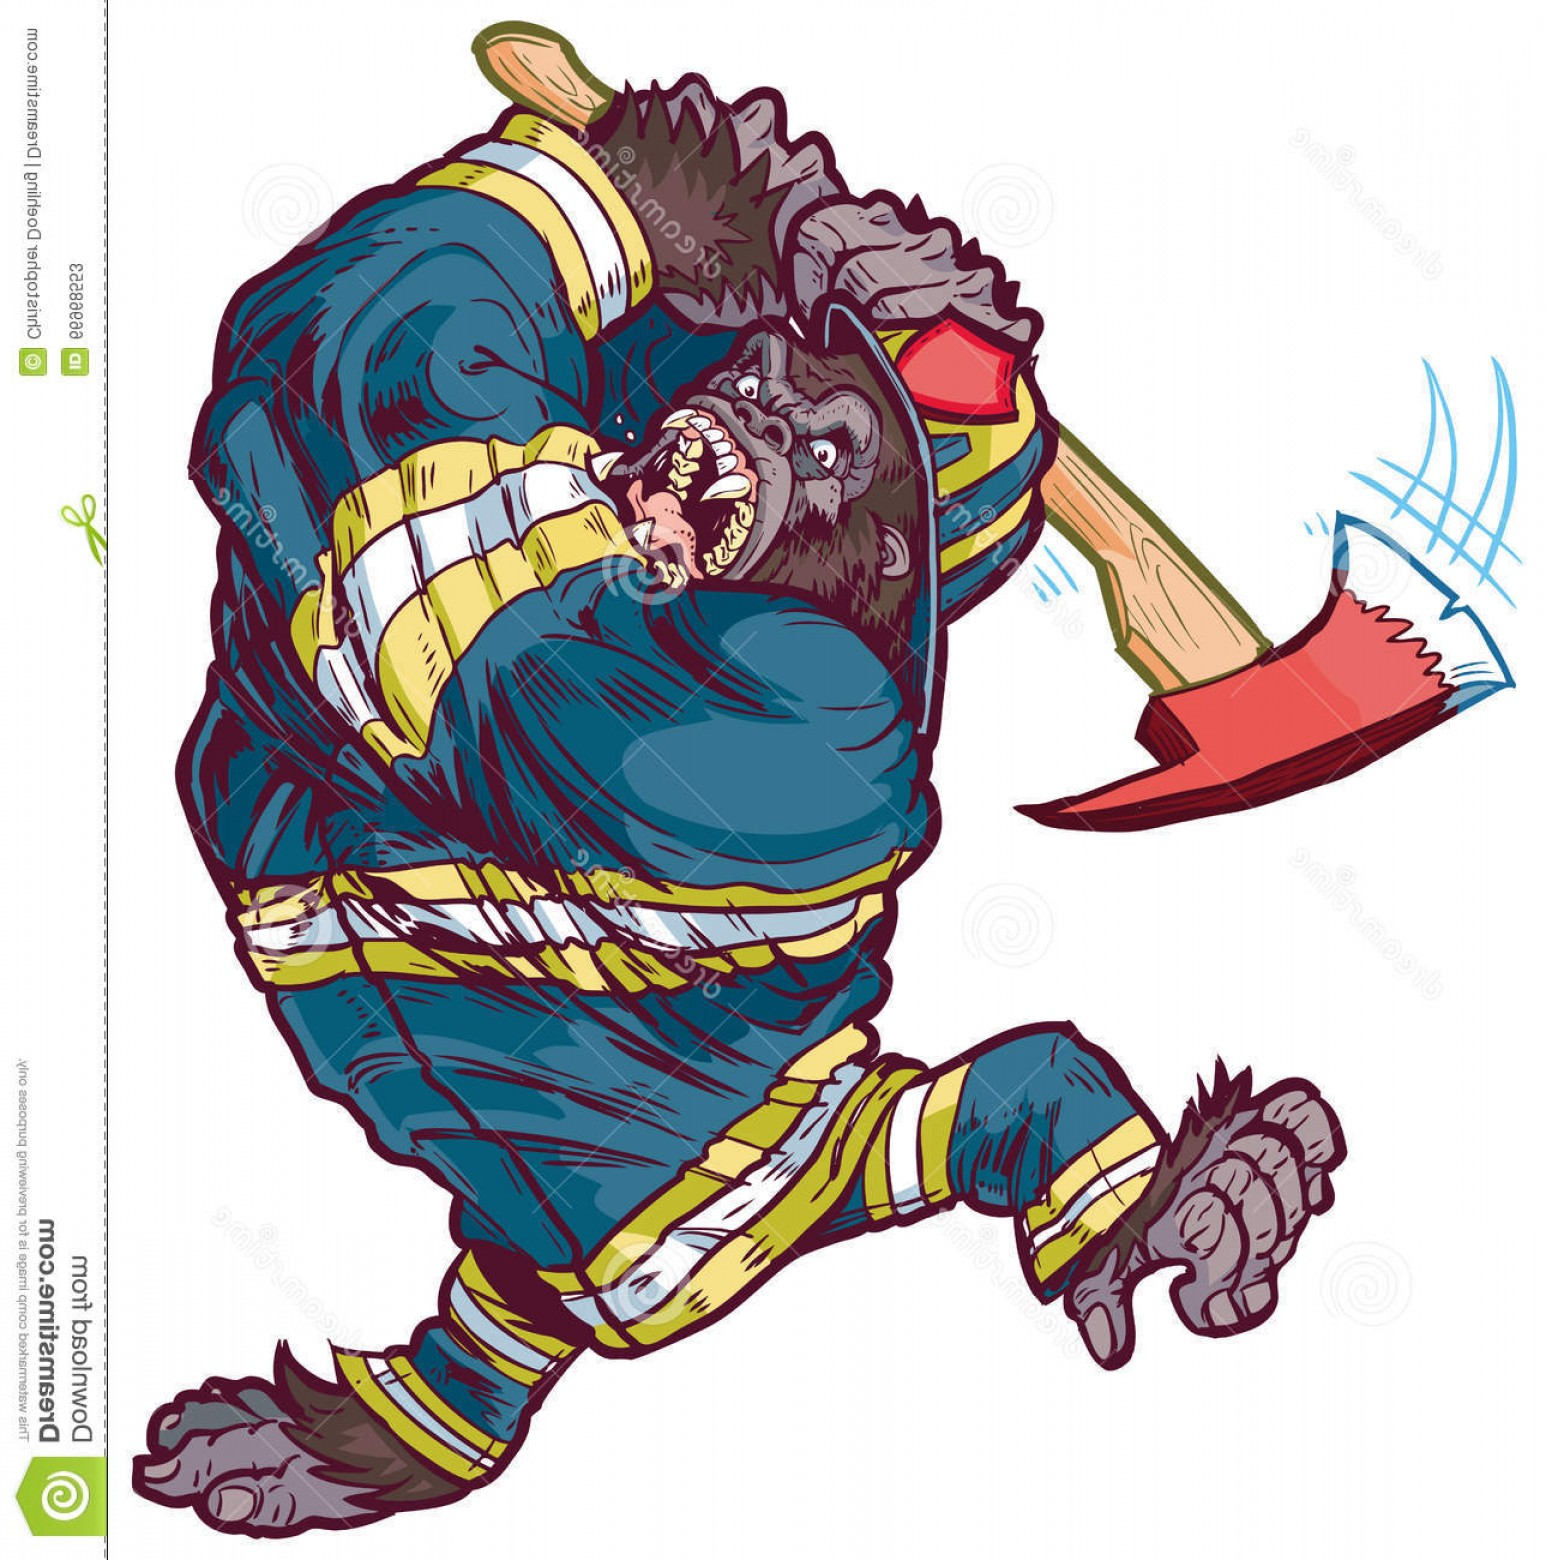 Anry fireman clipart banner transparent library Stock Illustration Angry Cartoon Gorilla Firefighter Swinging Fire ... banner transparent library